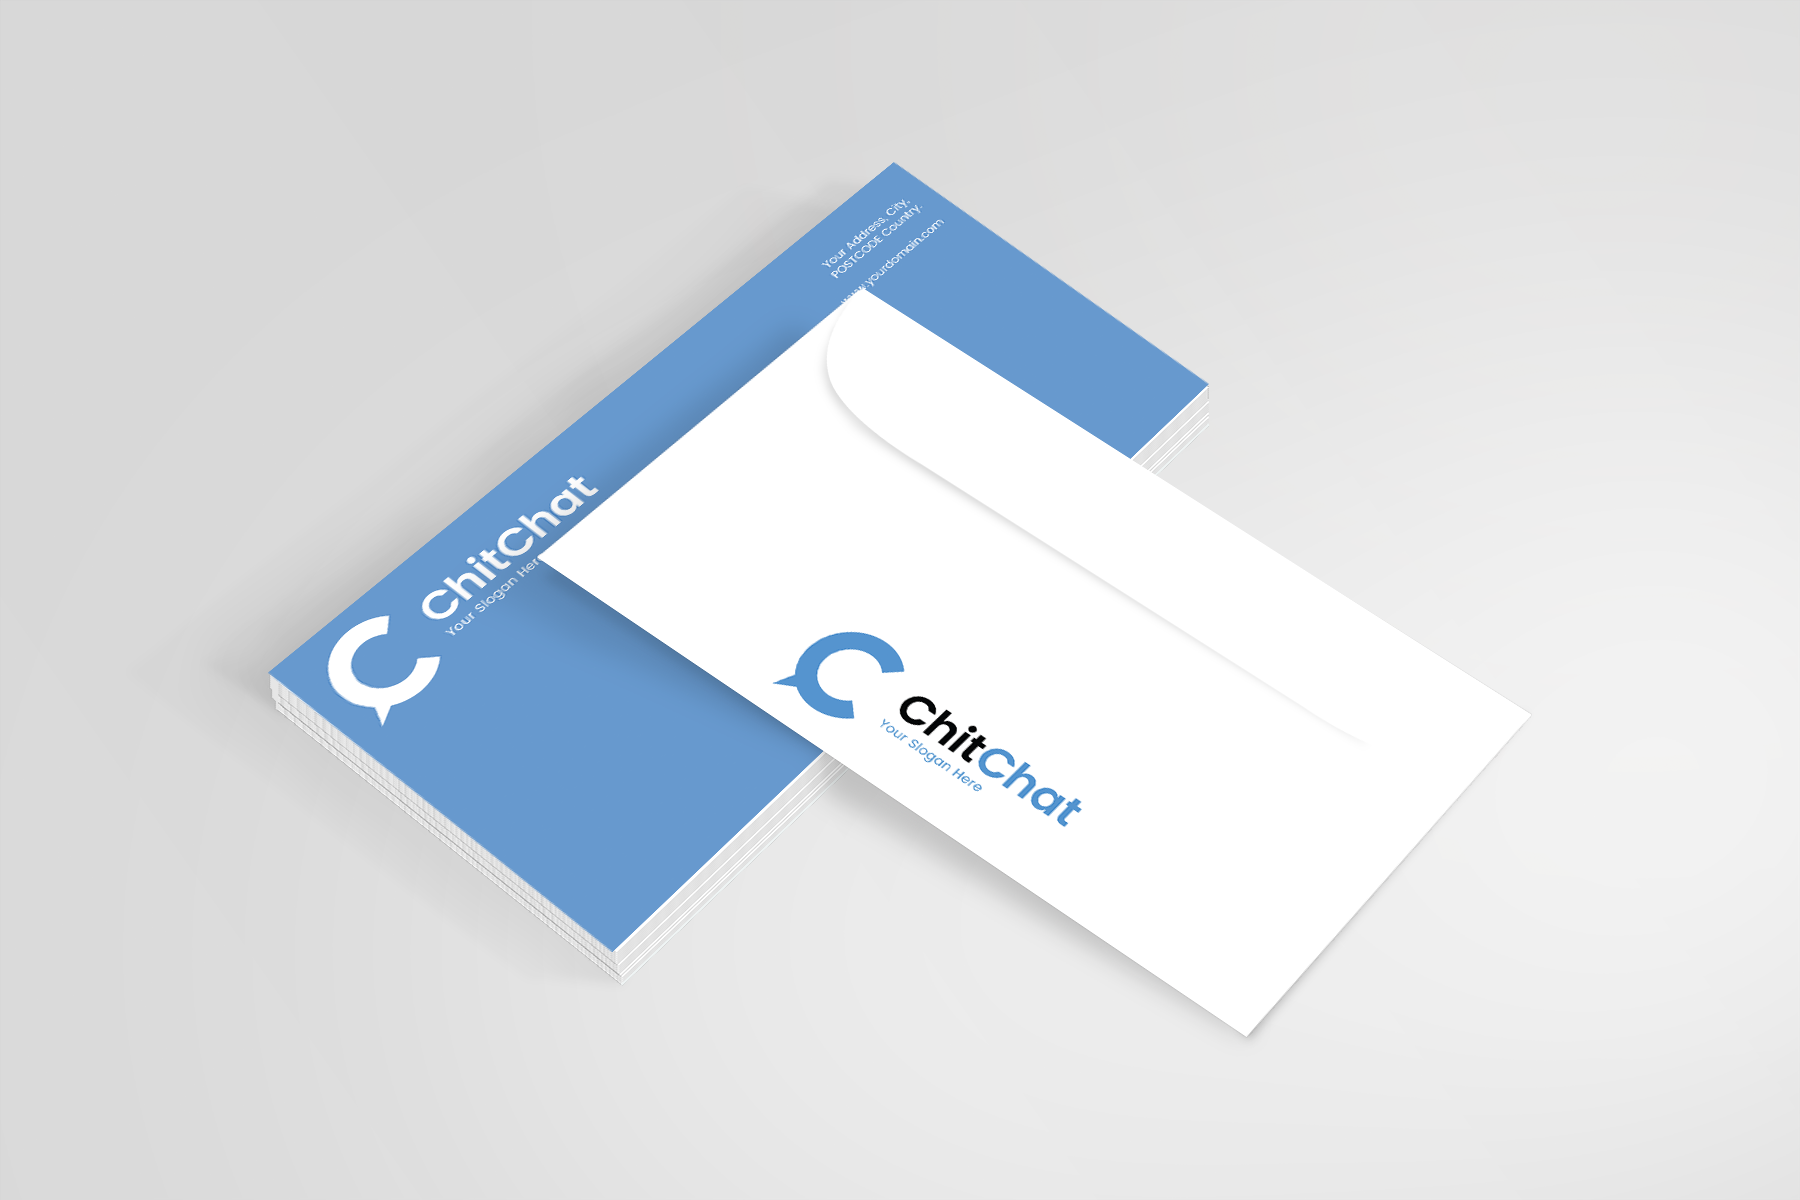 https://s3.tmimgcdn.com/templates/1215/scr/chit-chat-identity-4.png